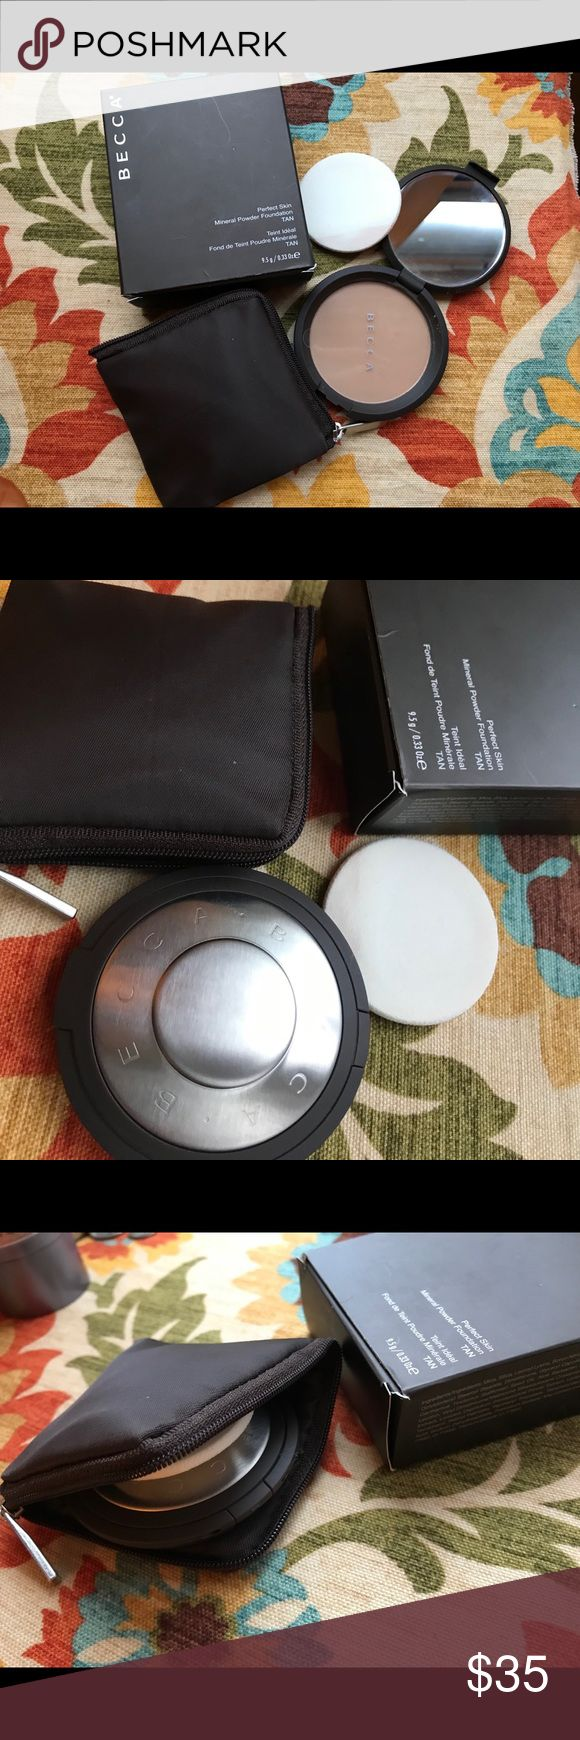 BECCA Perfect Skin Mineral Powder Foundation TAN Brand New In Box  Color- TAN  Pure mineral pigments are pressed into this silky powder to deliver buildable coverage that feels light, looks fresh all day, and leaves skin with a soft, luminous finish. This water-resistant formula, enriched with antioxidant vitamins A, B, C, and E for antiaging benefits, lasts all day. BECCA Makeup Foundation